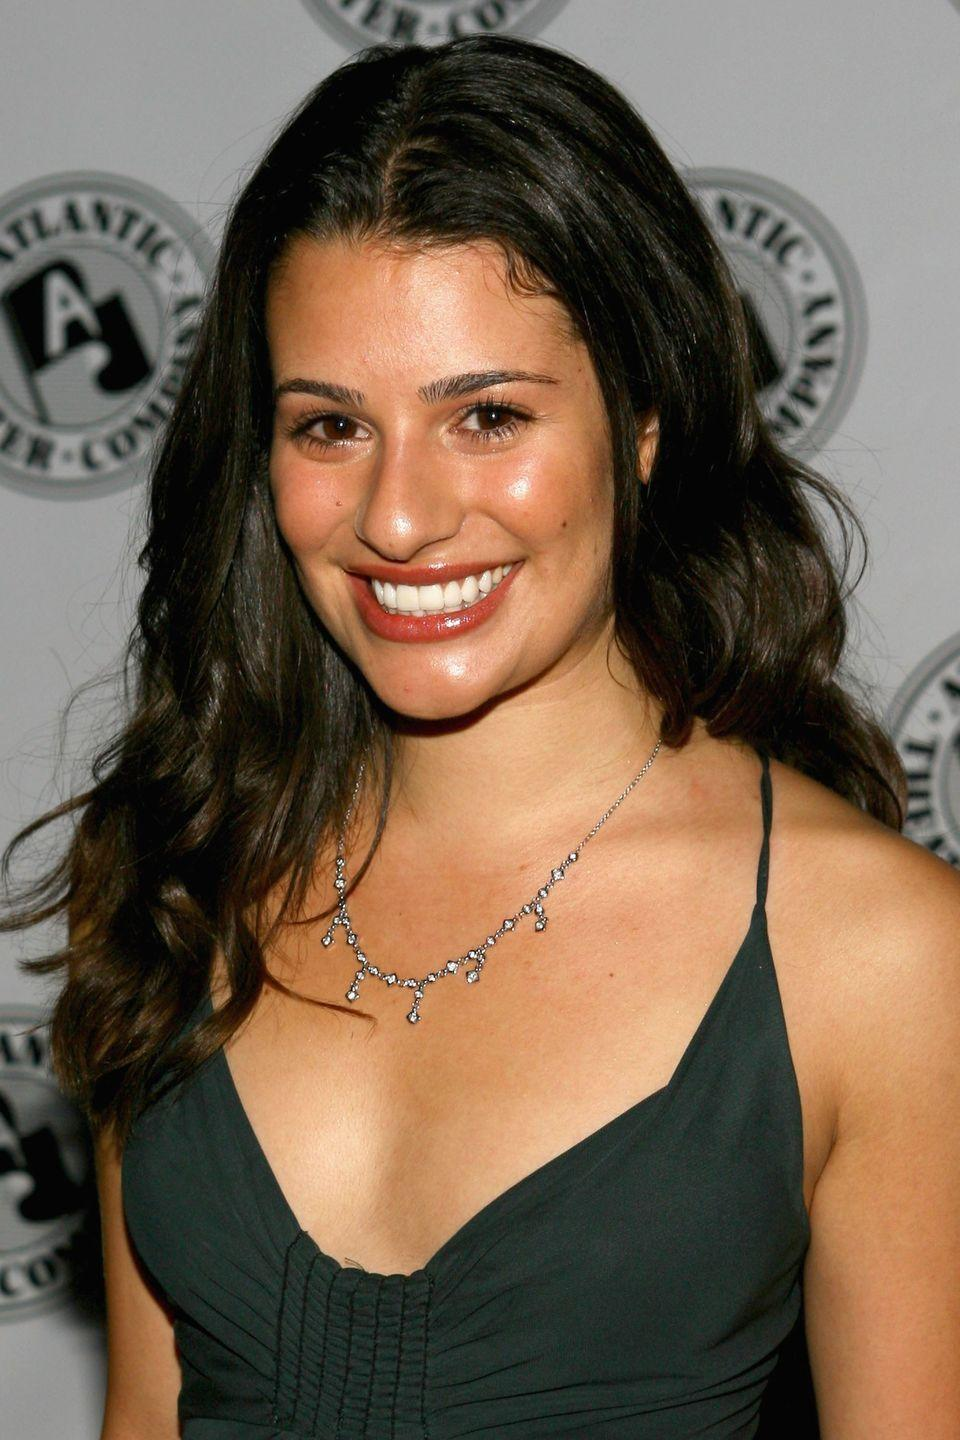 <p>Michele started her Broadway career at the age of 8, debuting as a replacement for Cosette in 1995's <em>Les Miserables. </em>She also appeared in <em>Ragtime </em>and <em>Fiddler on the Roof</em>. Most notably, she originated the role of Wendla in the off-Broadway debut of <em>Spring Awakening</em> and stayed with the role from 2006-2008 in its Broadway run. A year later, she impressed viewers as Rachel Berry in <em>Glee</em>, where her singing chops matched her acting skills. Michele received Emmy and Golden Globe nominations for the role. She was signed to Columbia Records in 2012 and has released several albums.</p>